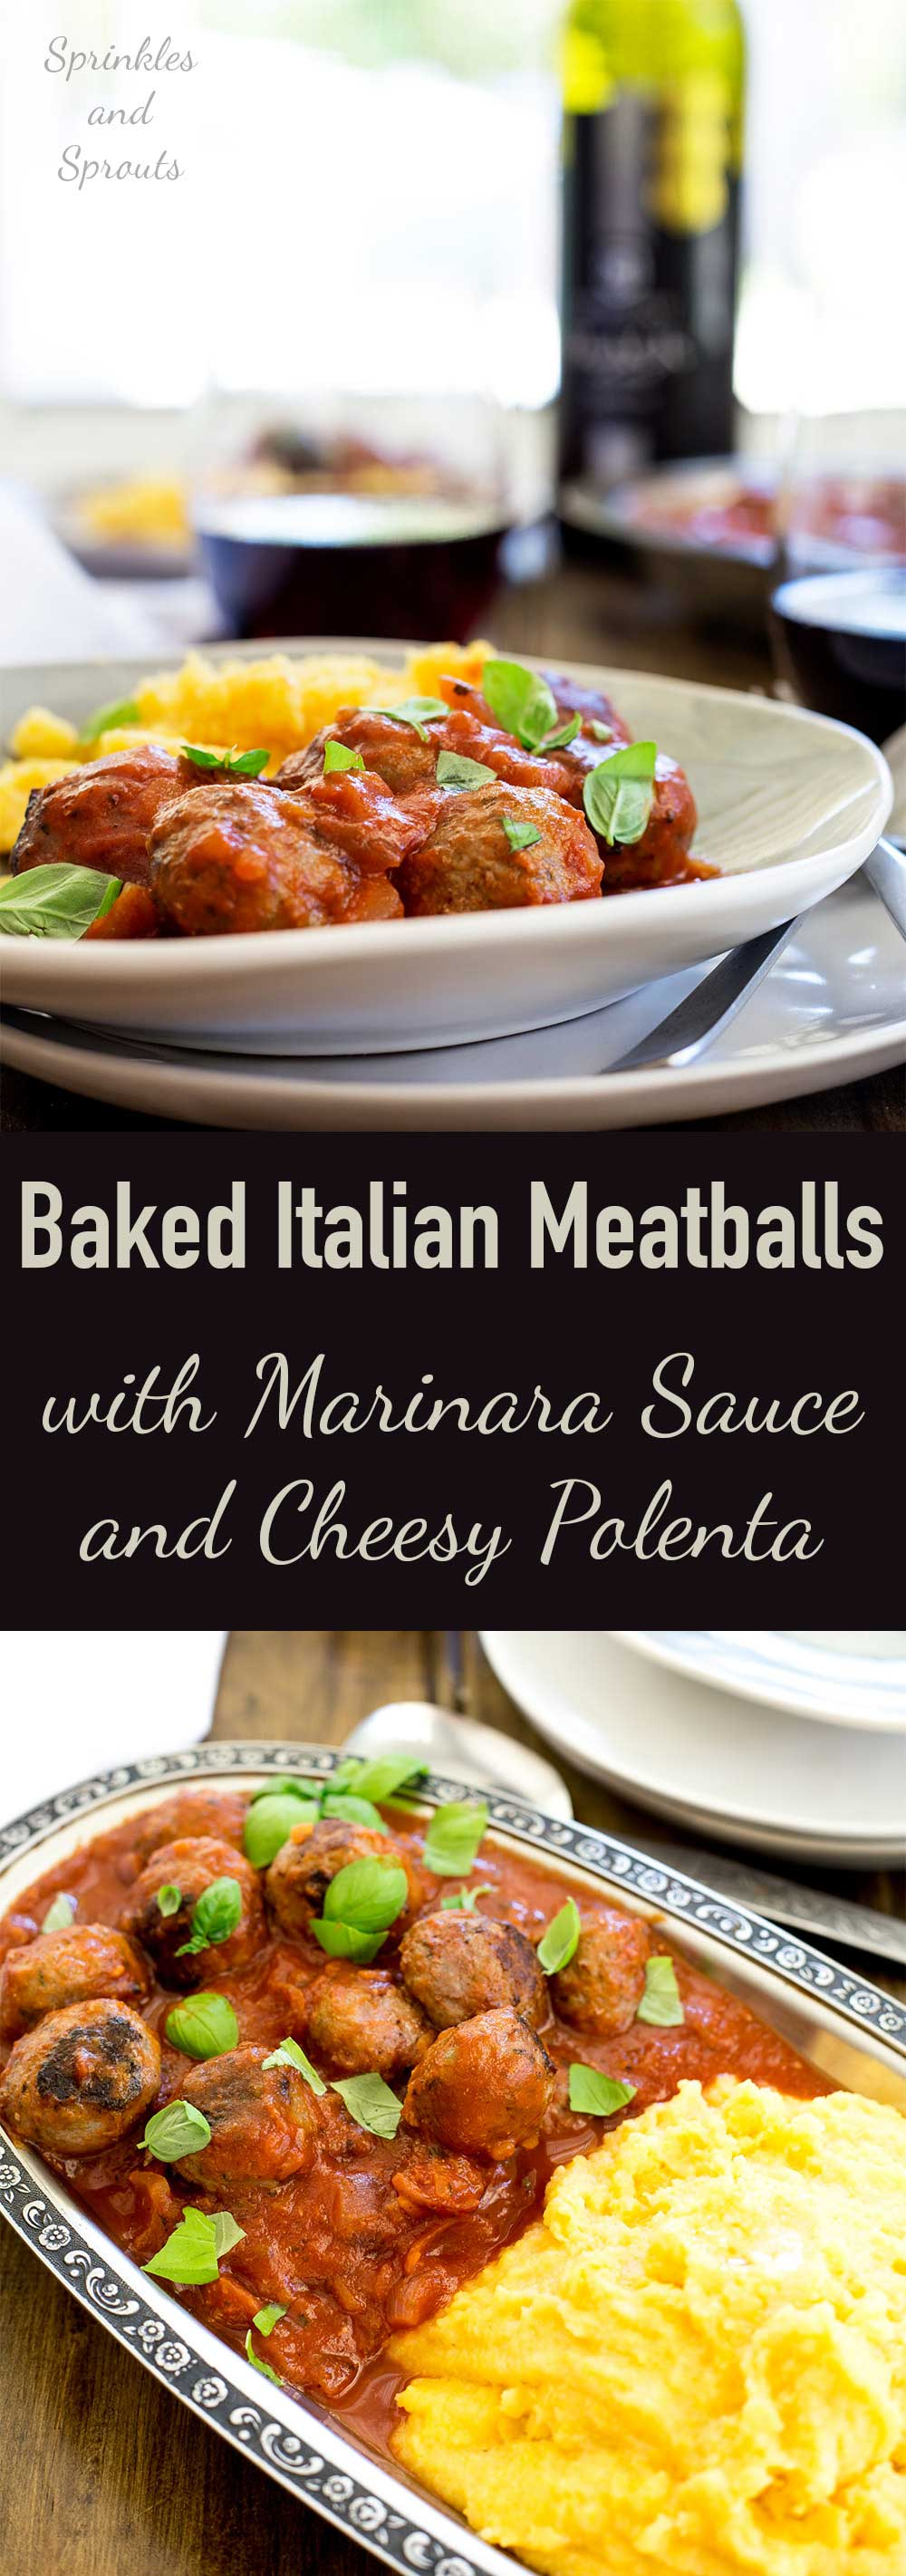 Polenta with Meatballs and Tomato Sauce